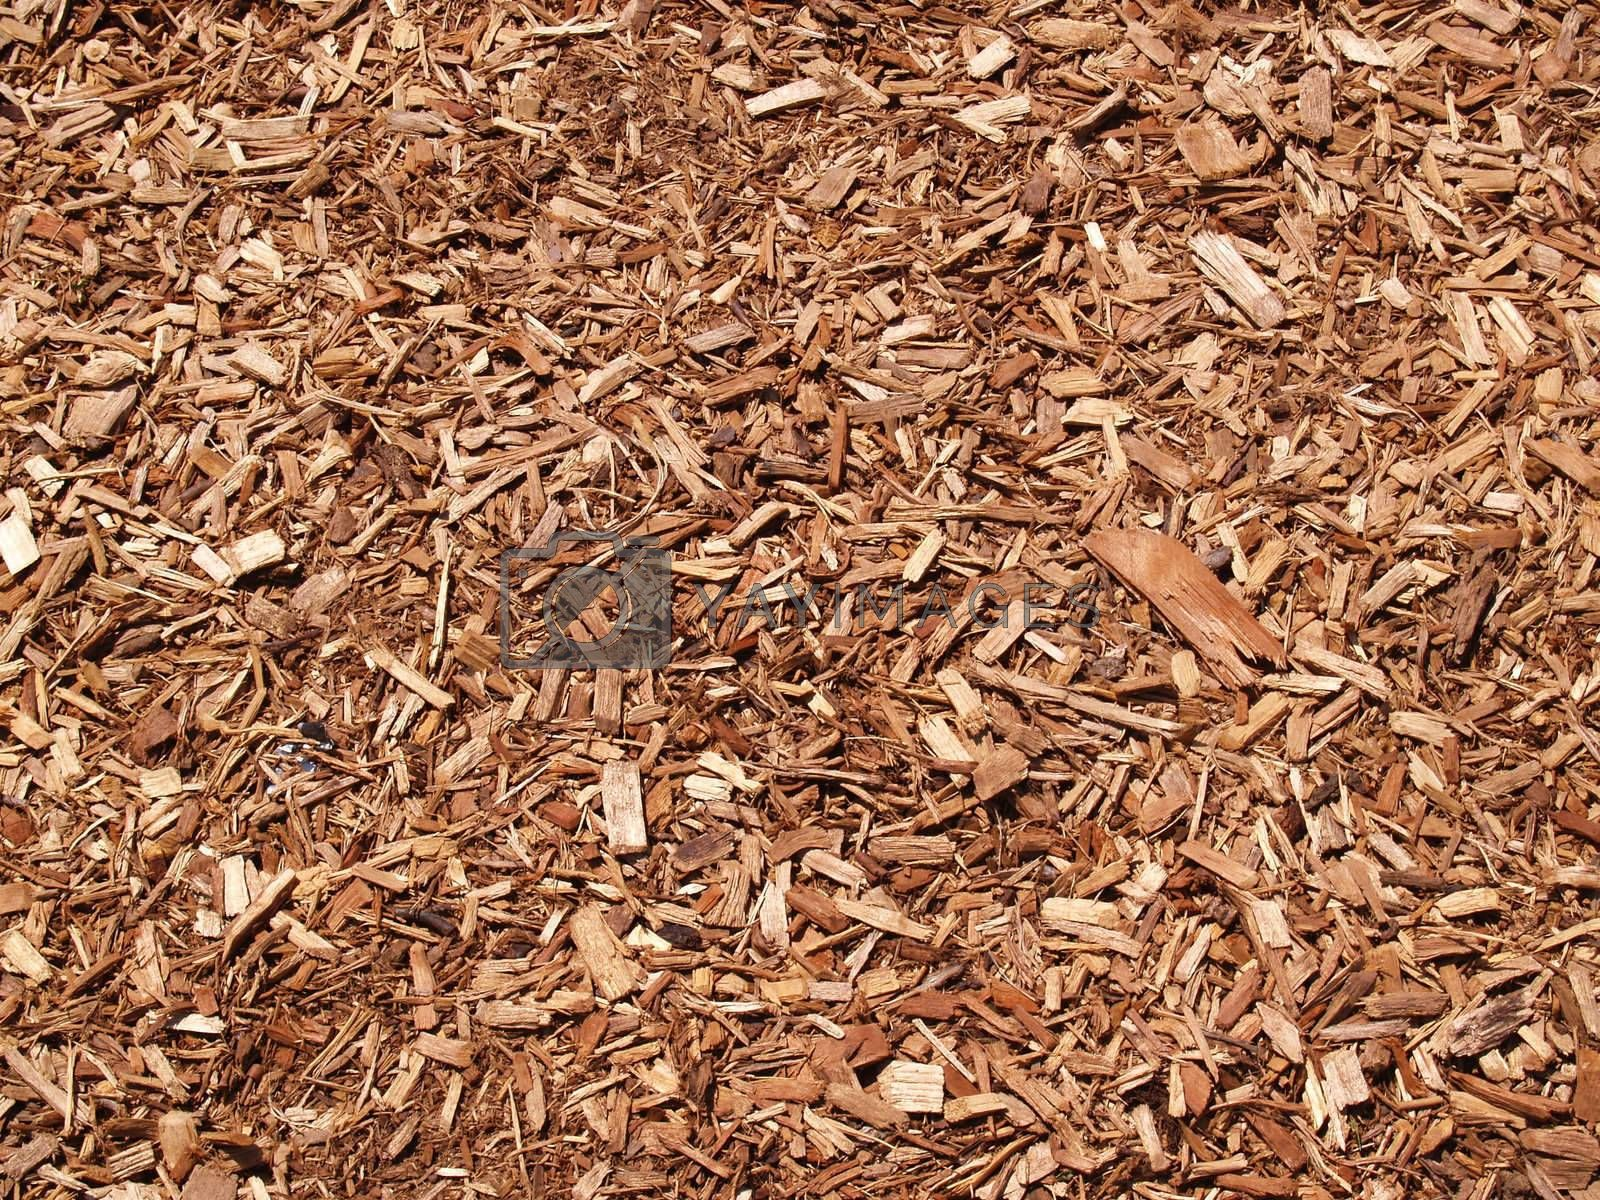 abstract view of wood mulch chips